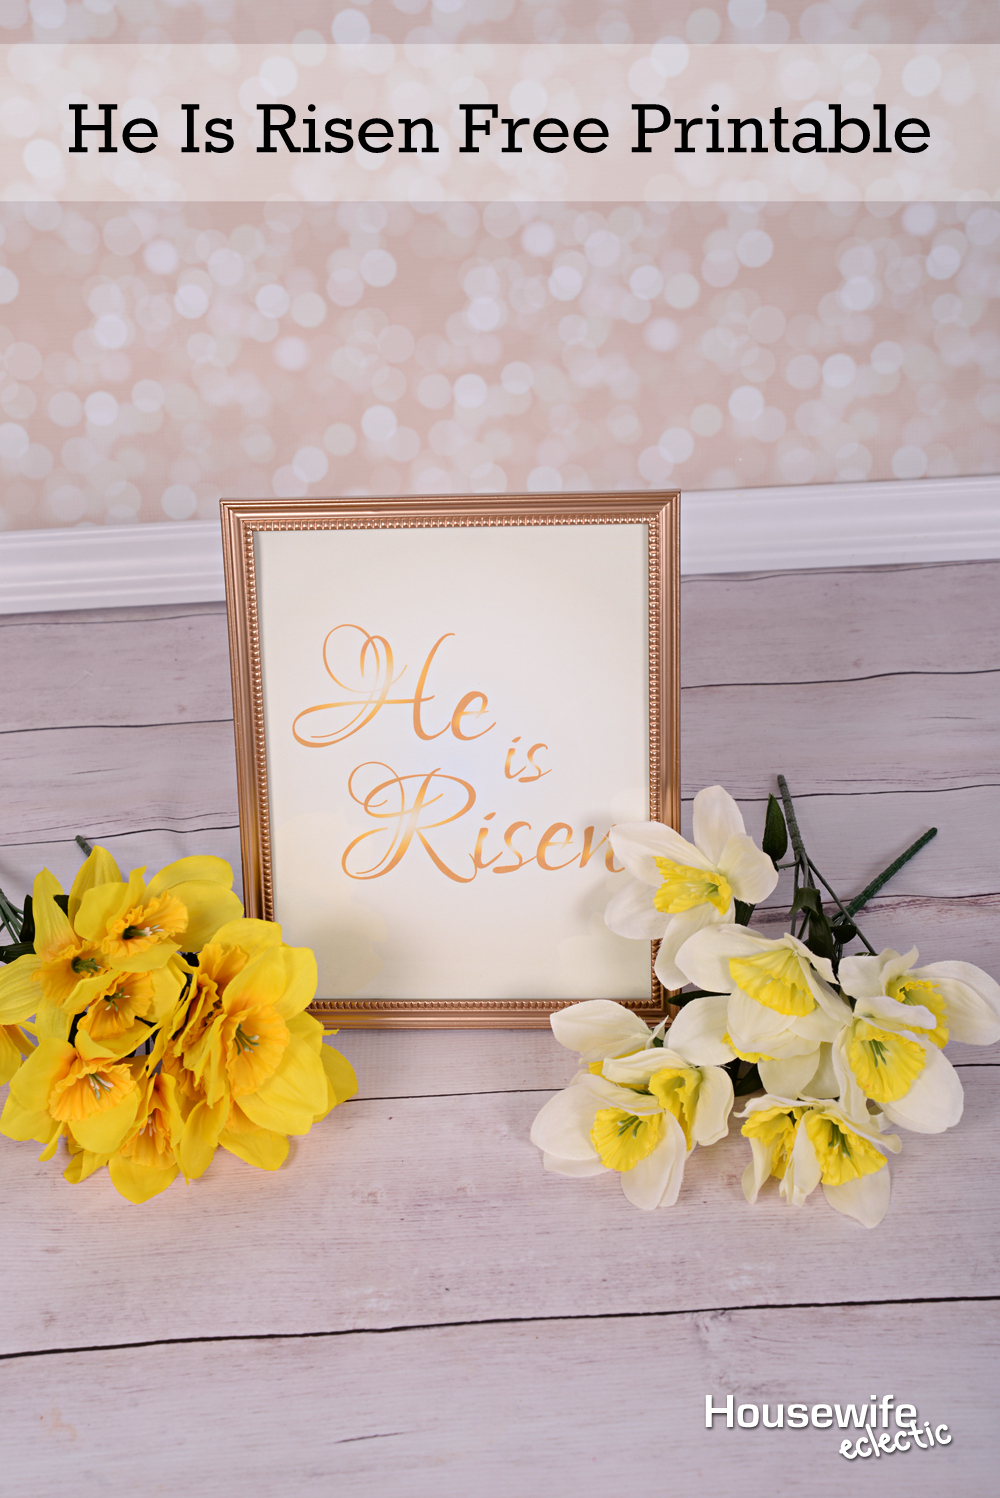 picture relating to He is Risen Printable known as He Is Risen Free of charge Printable - Housewife Eclectic